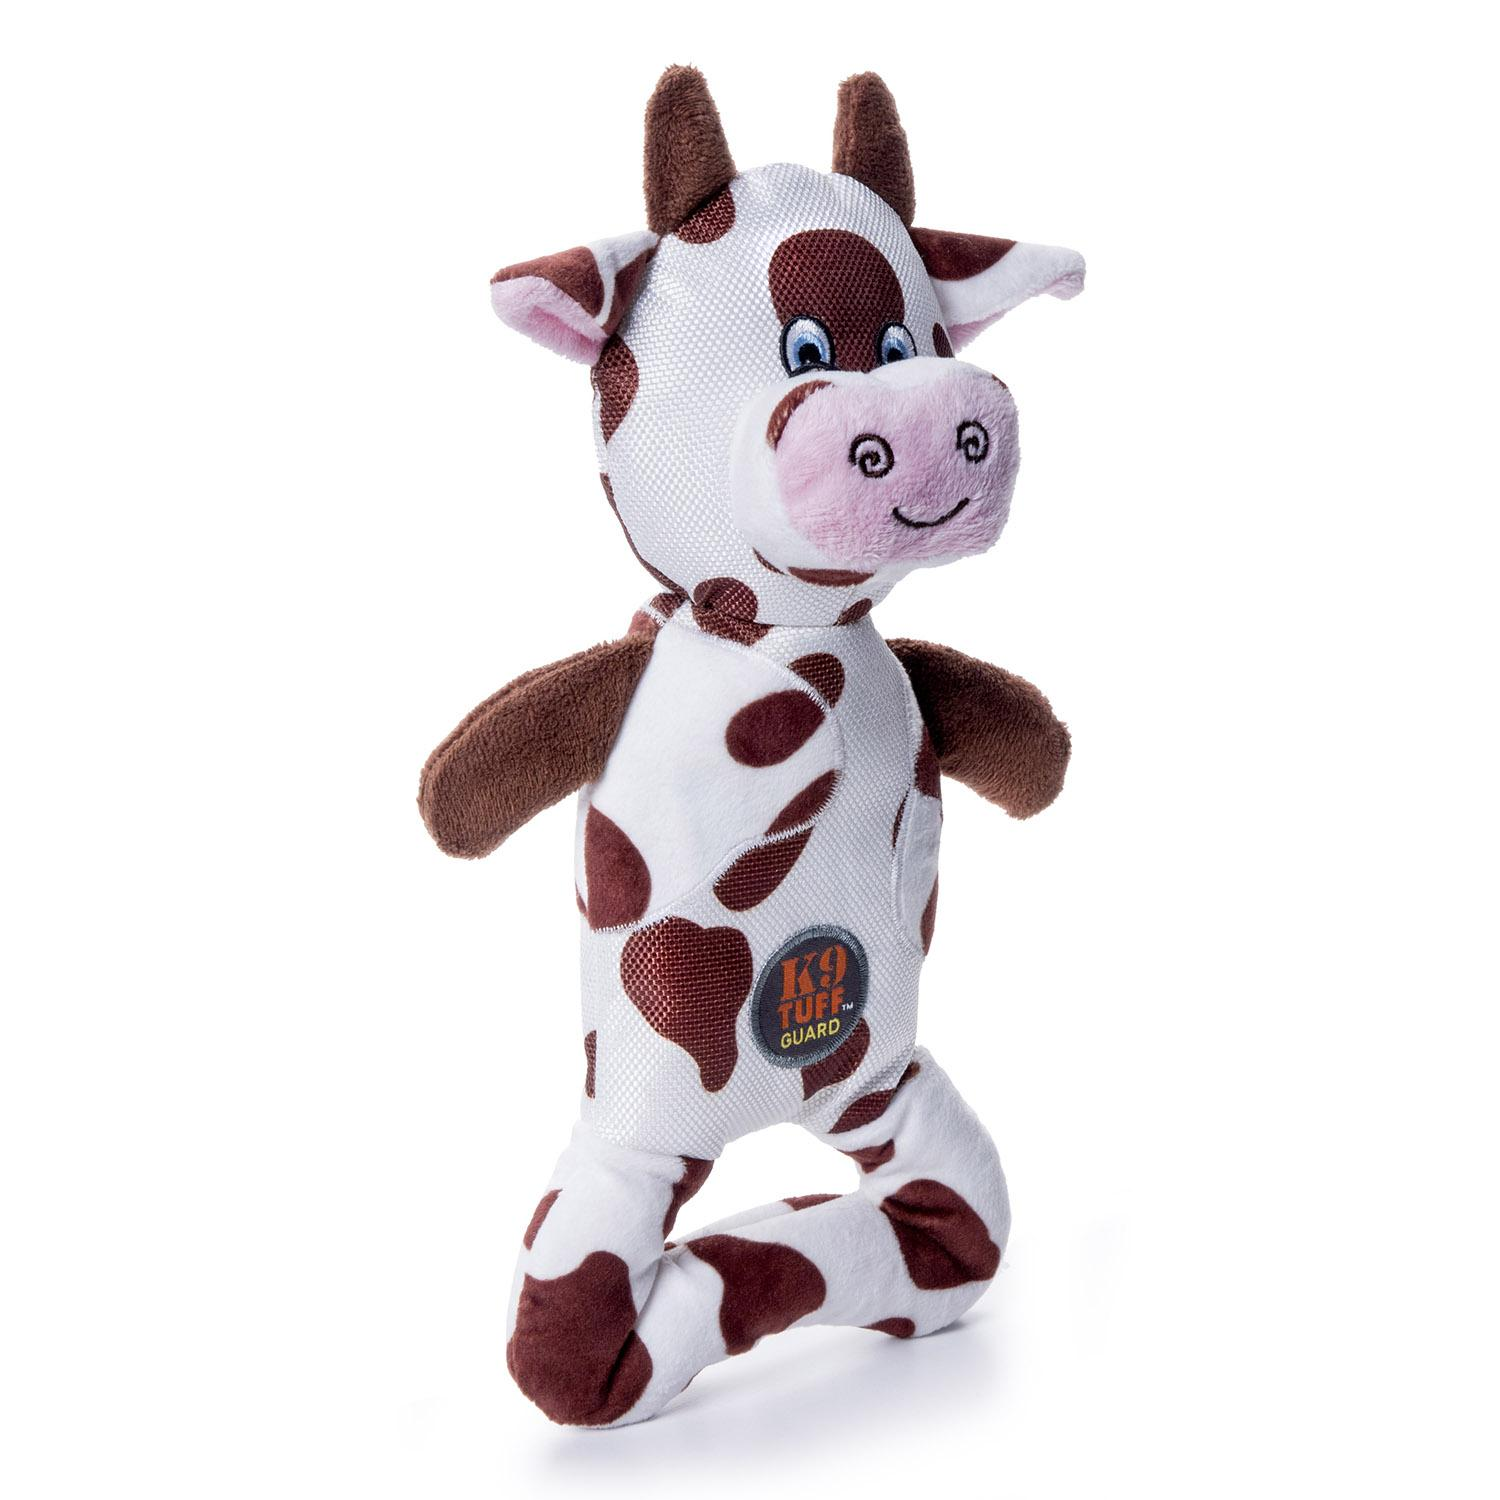 Charming Pattern Patches Durable Dog Toy - Brown Cow